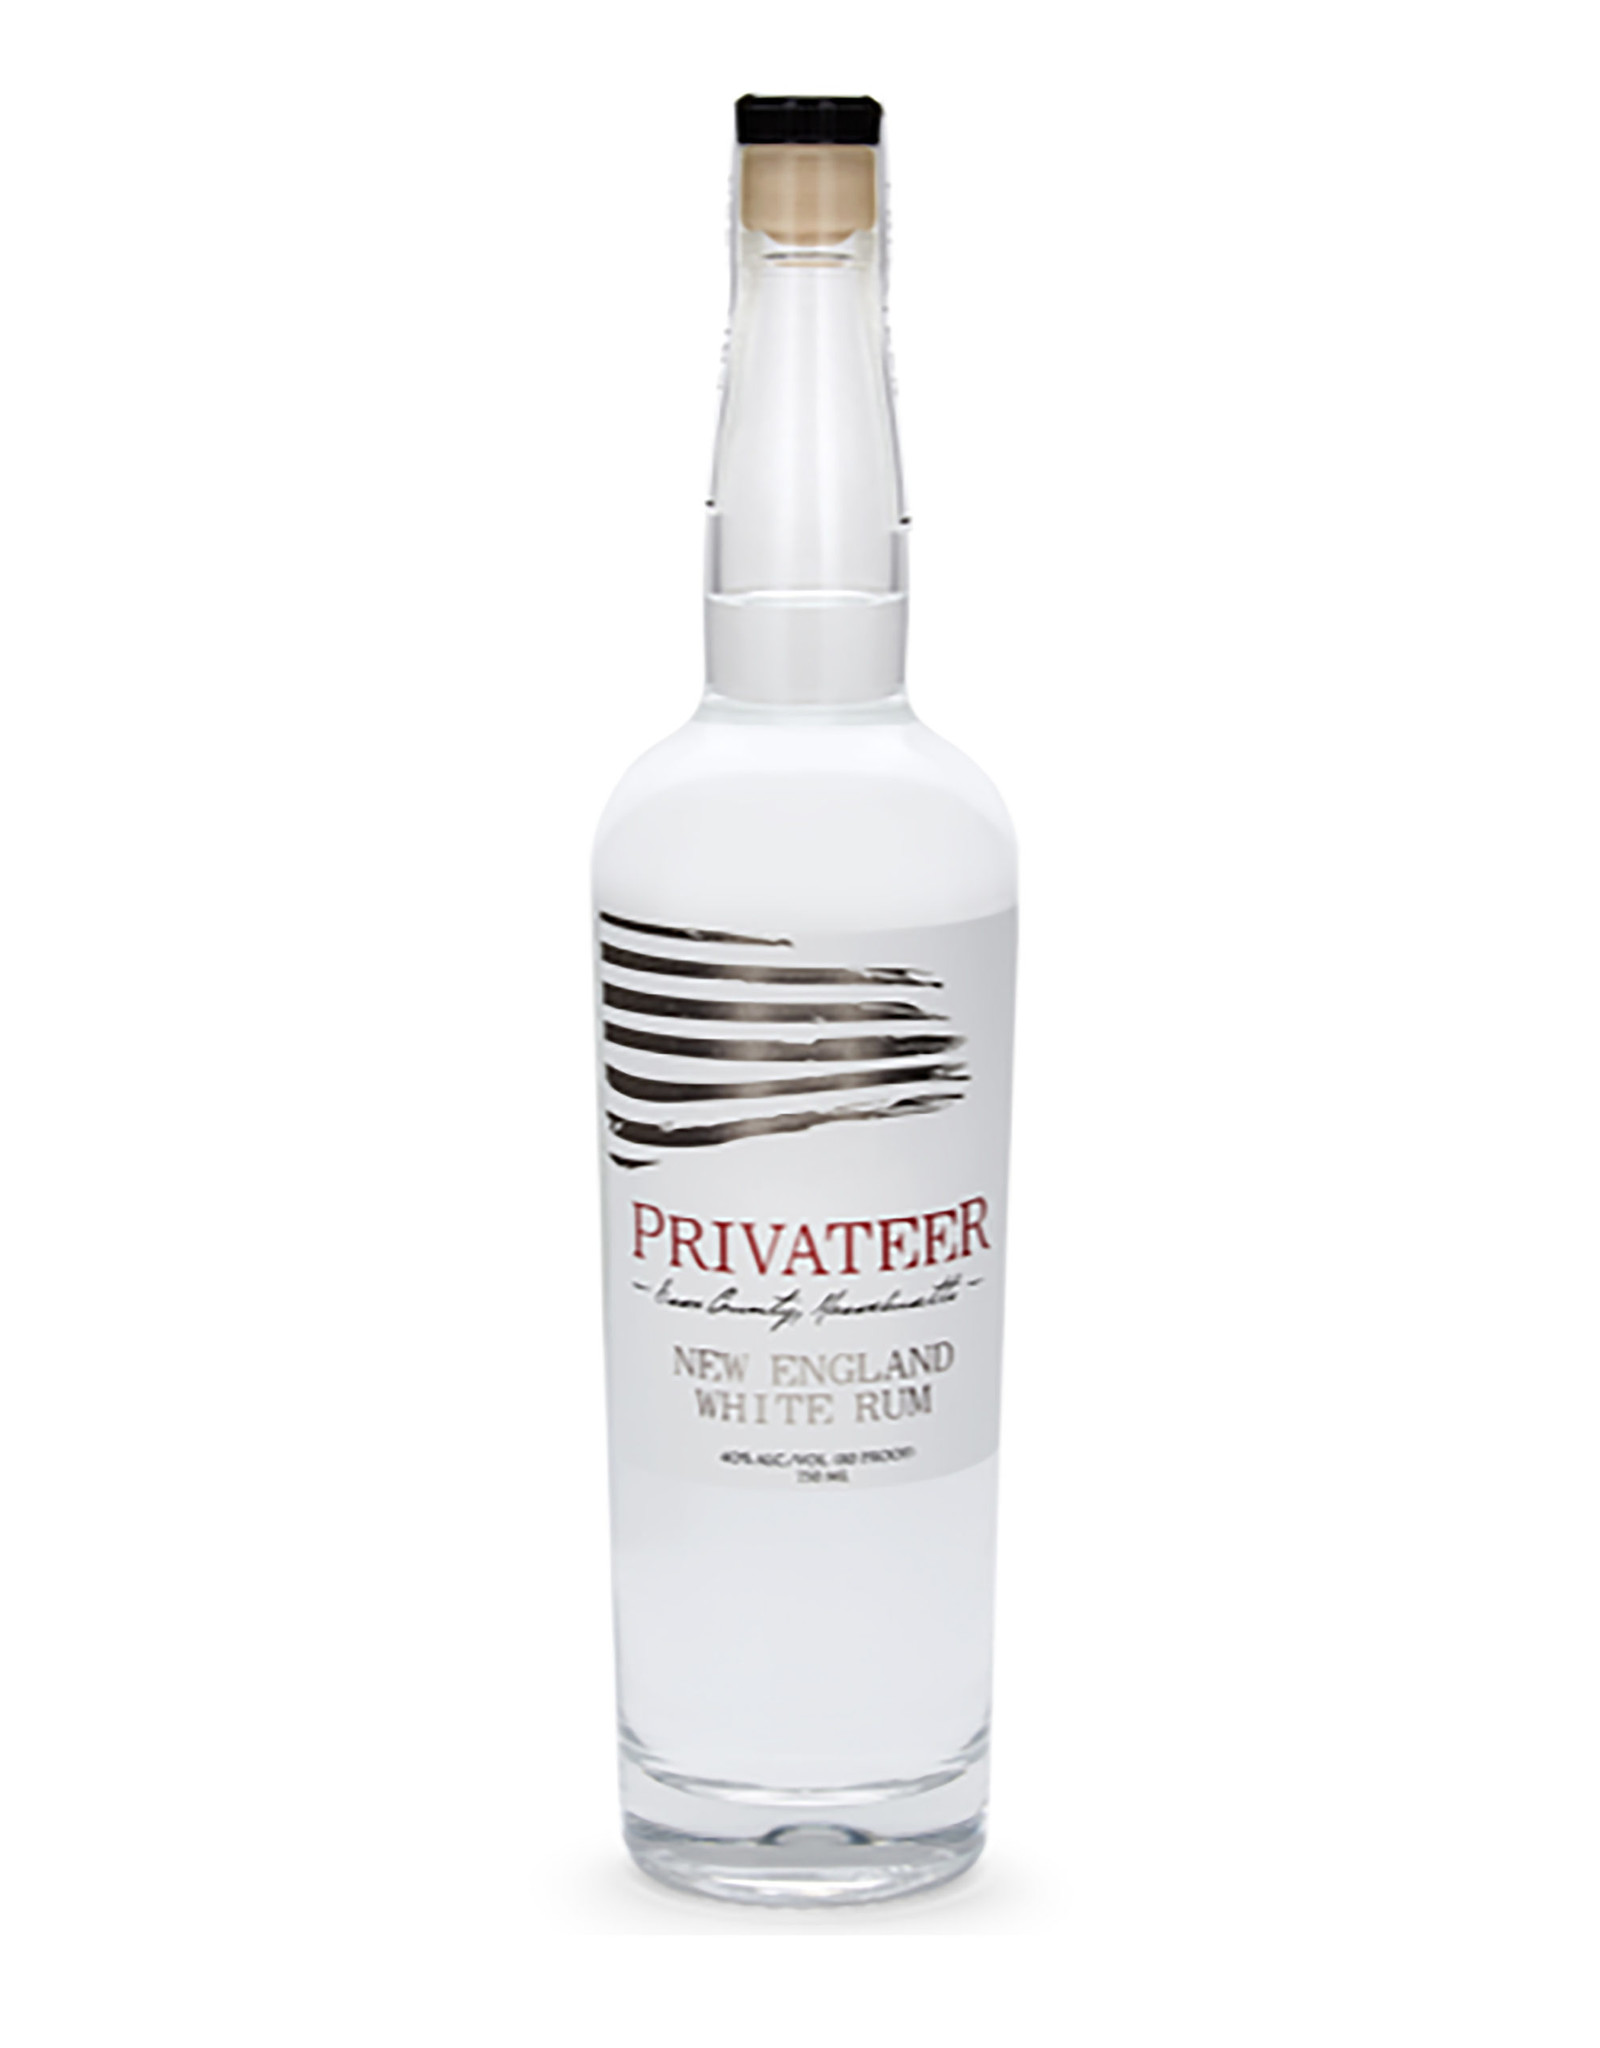 Privateer New England White Rum